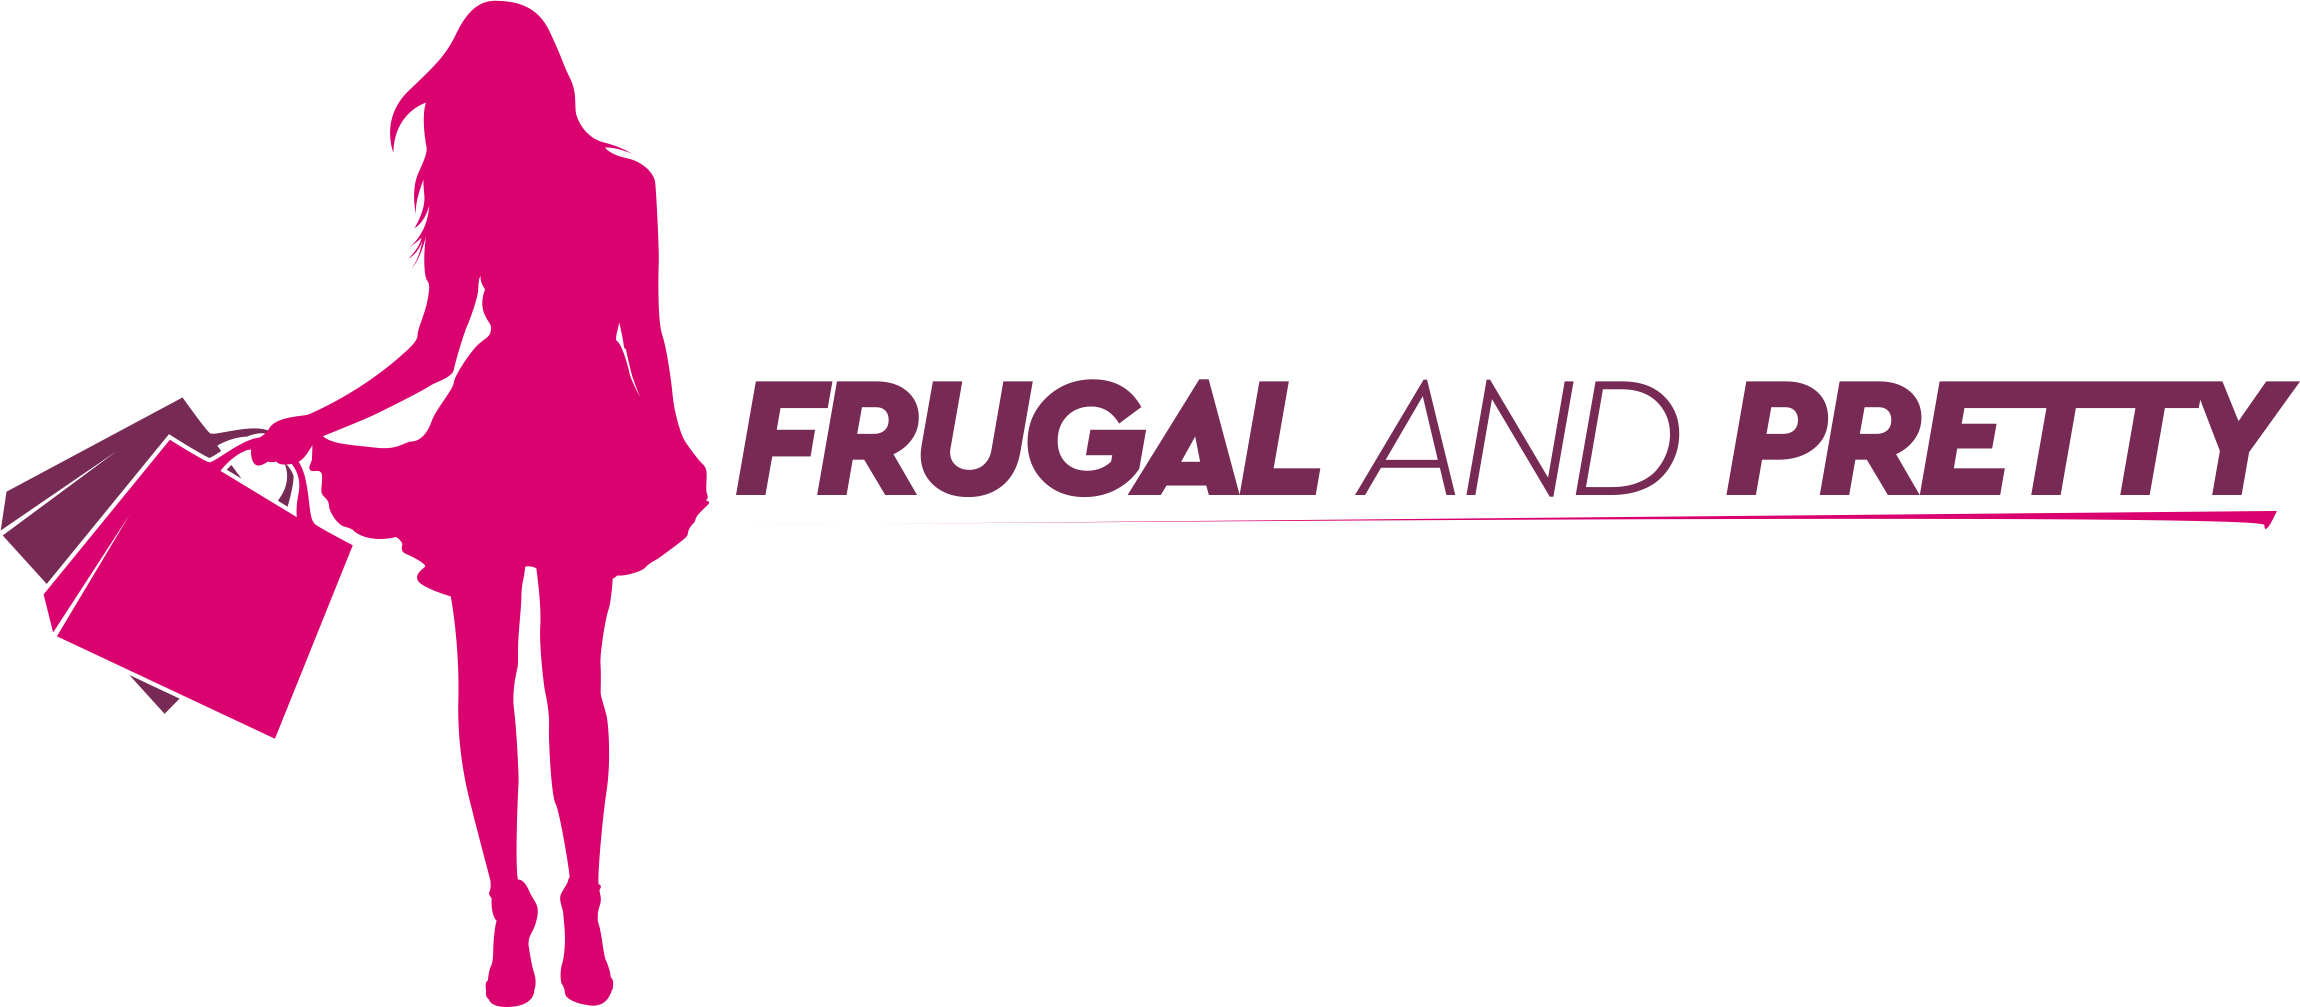 Frugal and Pretty